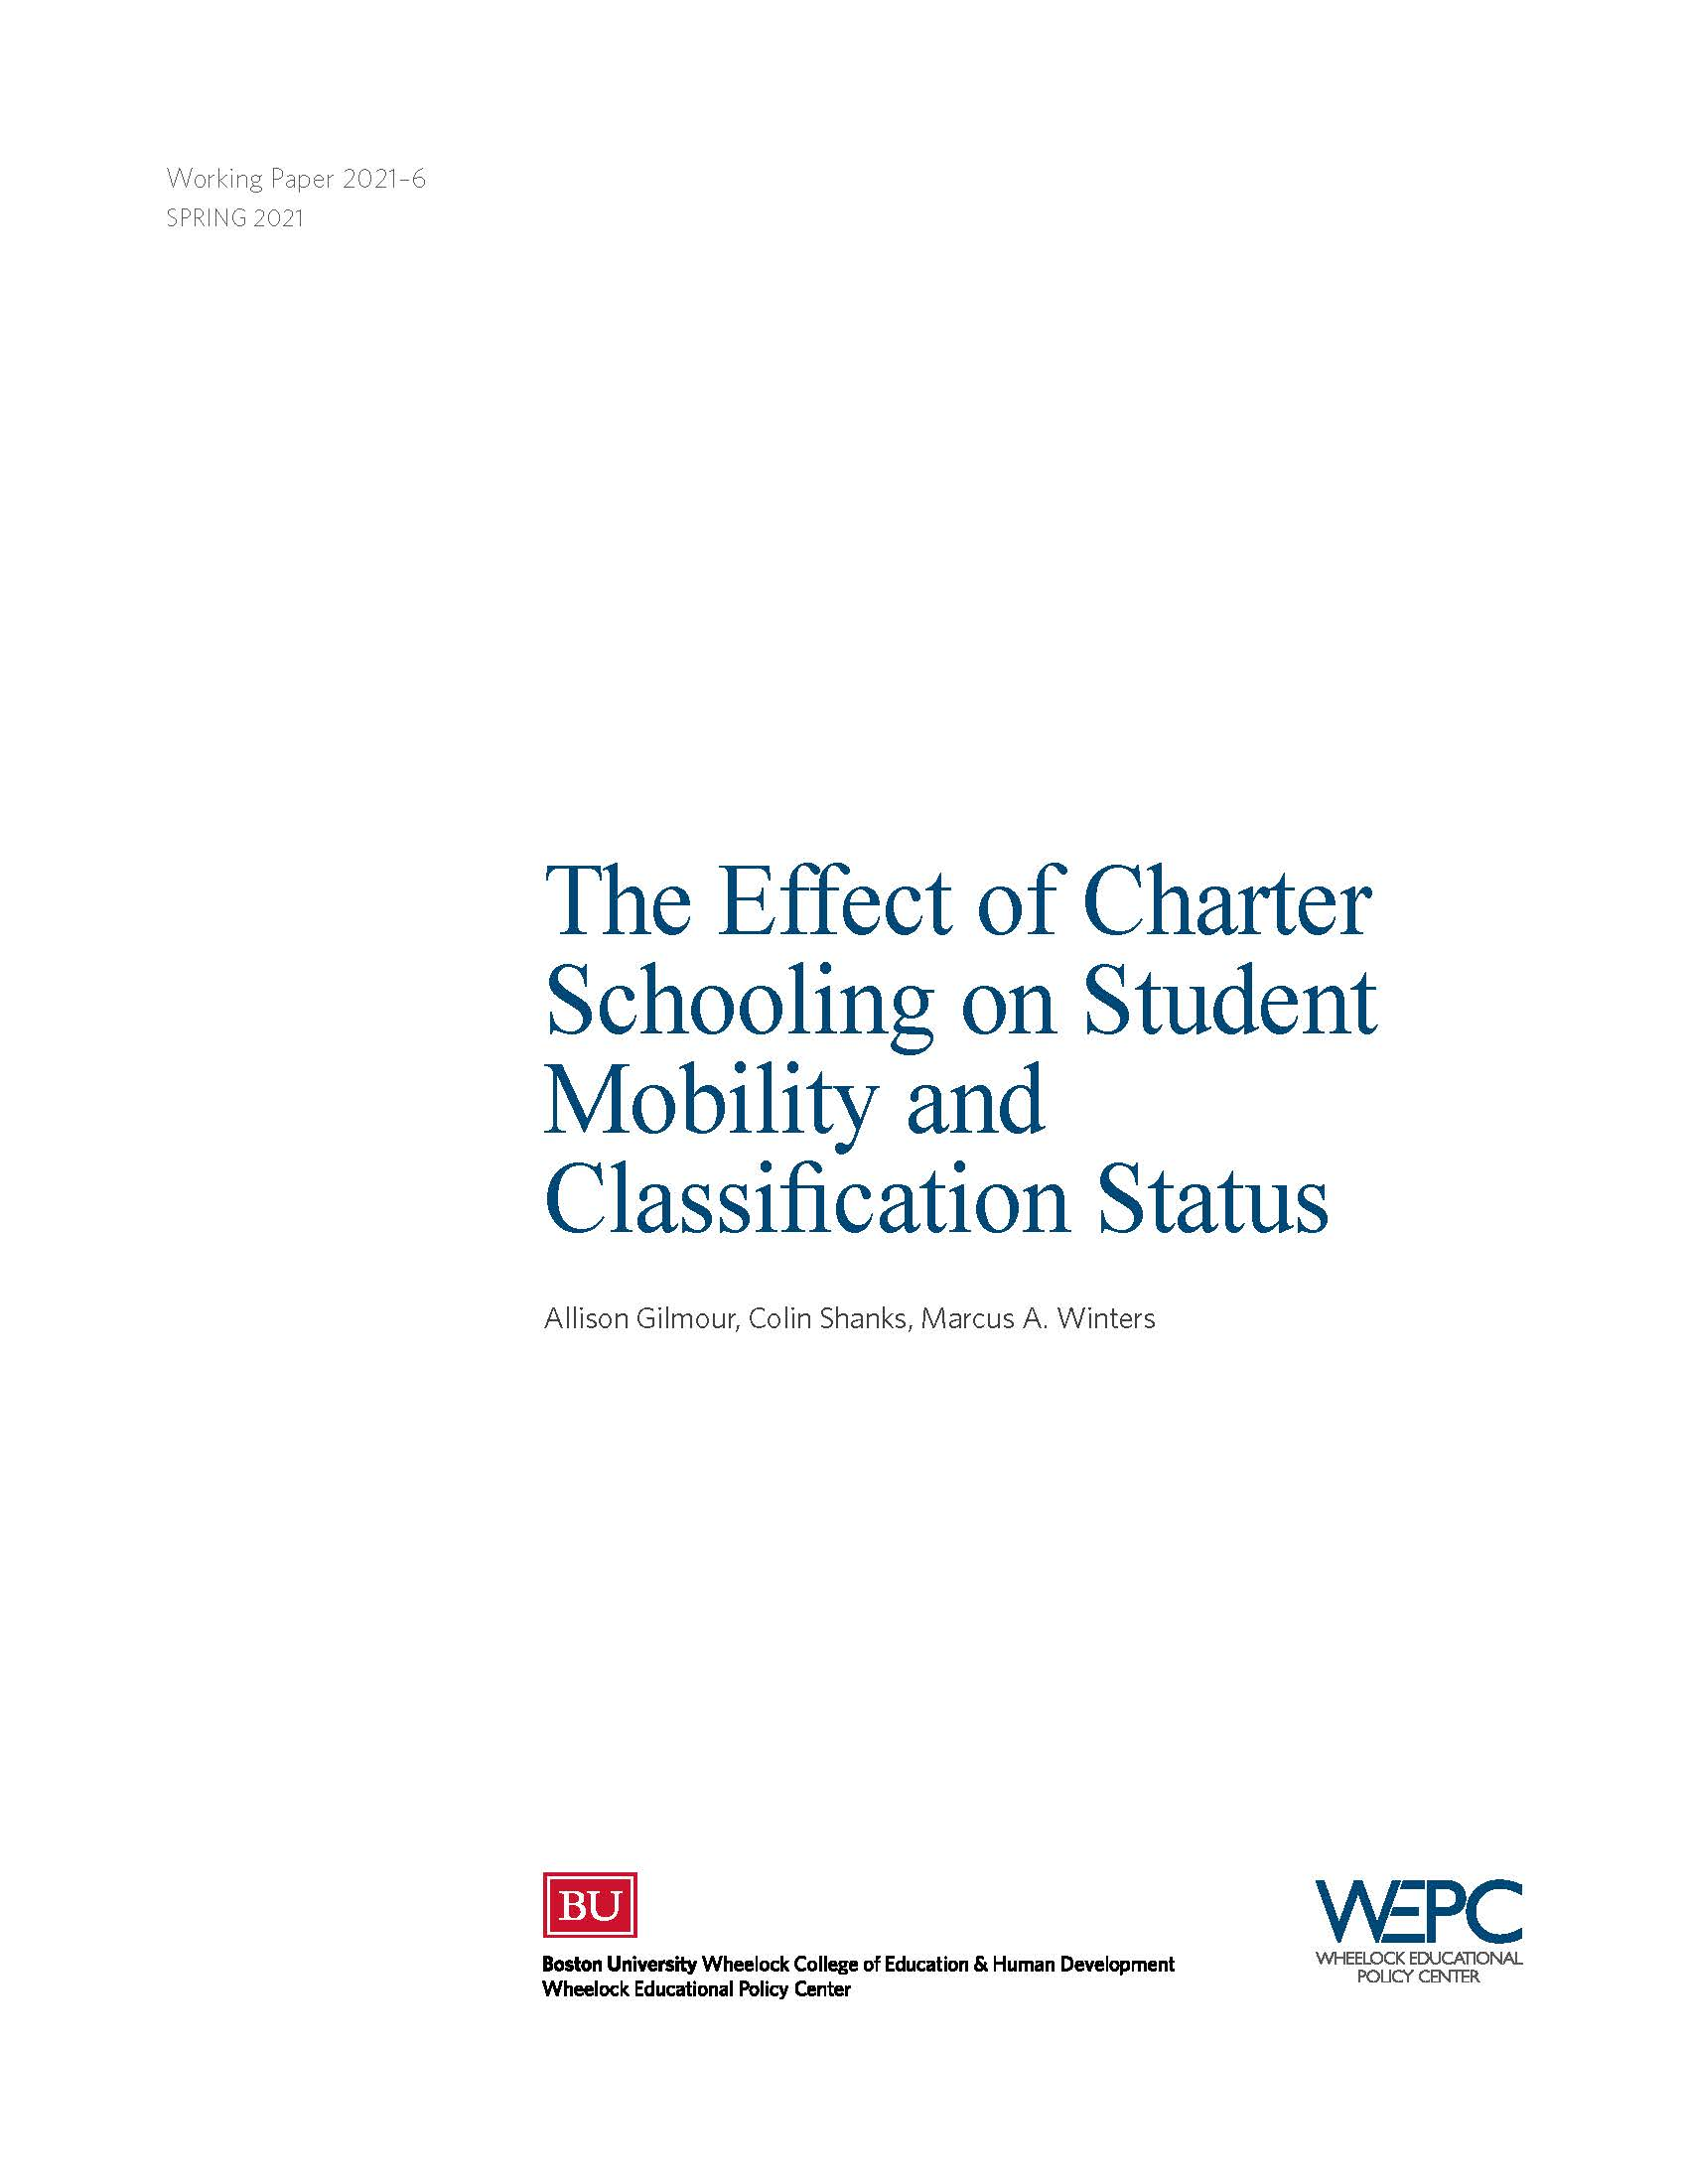 Charter Schooling Effect On Student Mobility